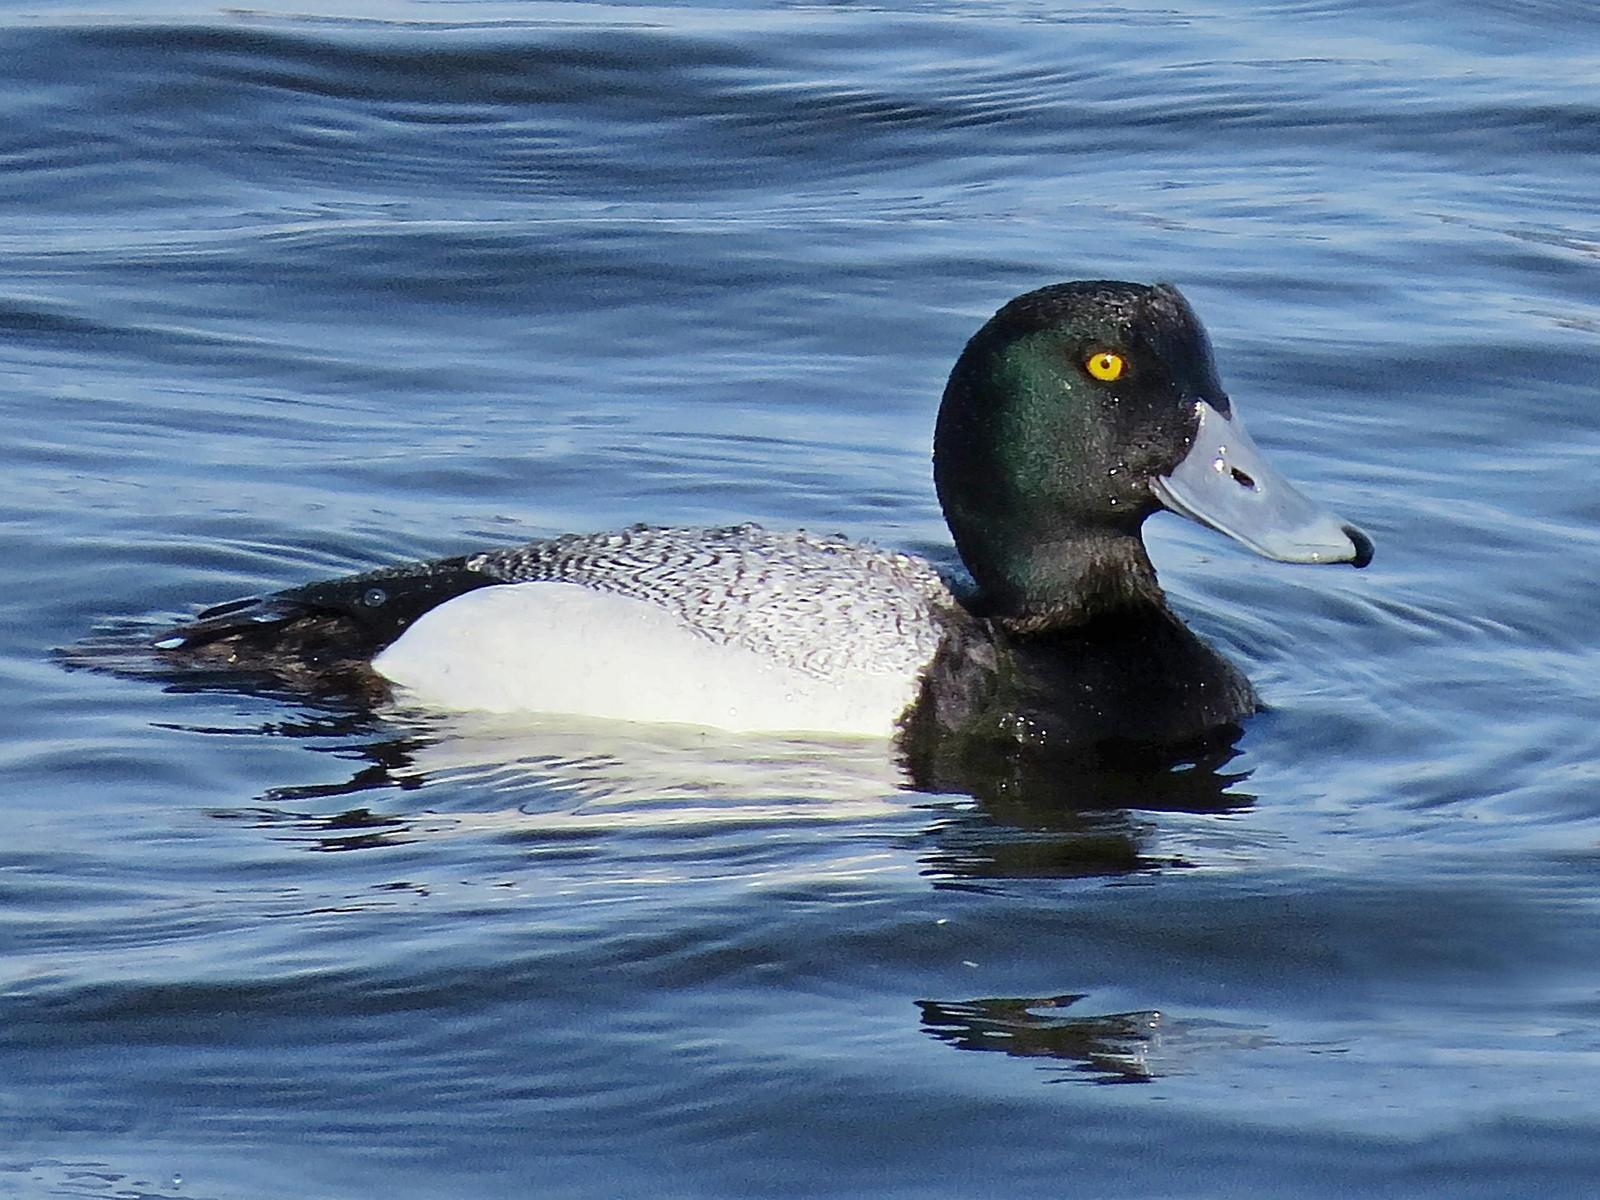 Greater Scaup Photo by Bob Neugebauer